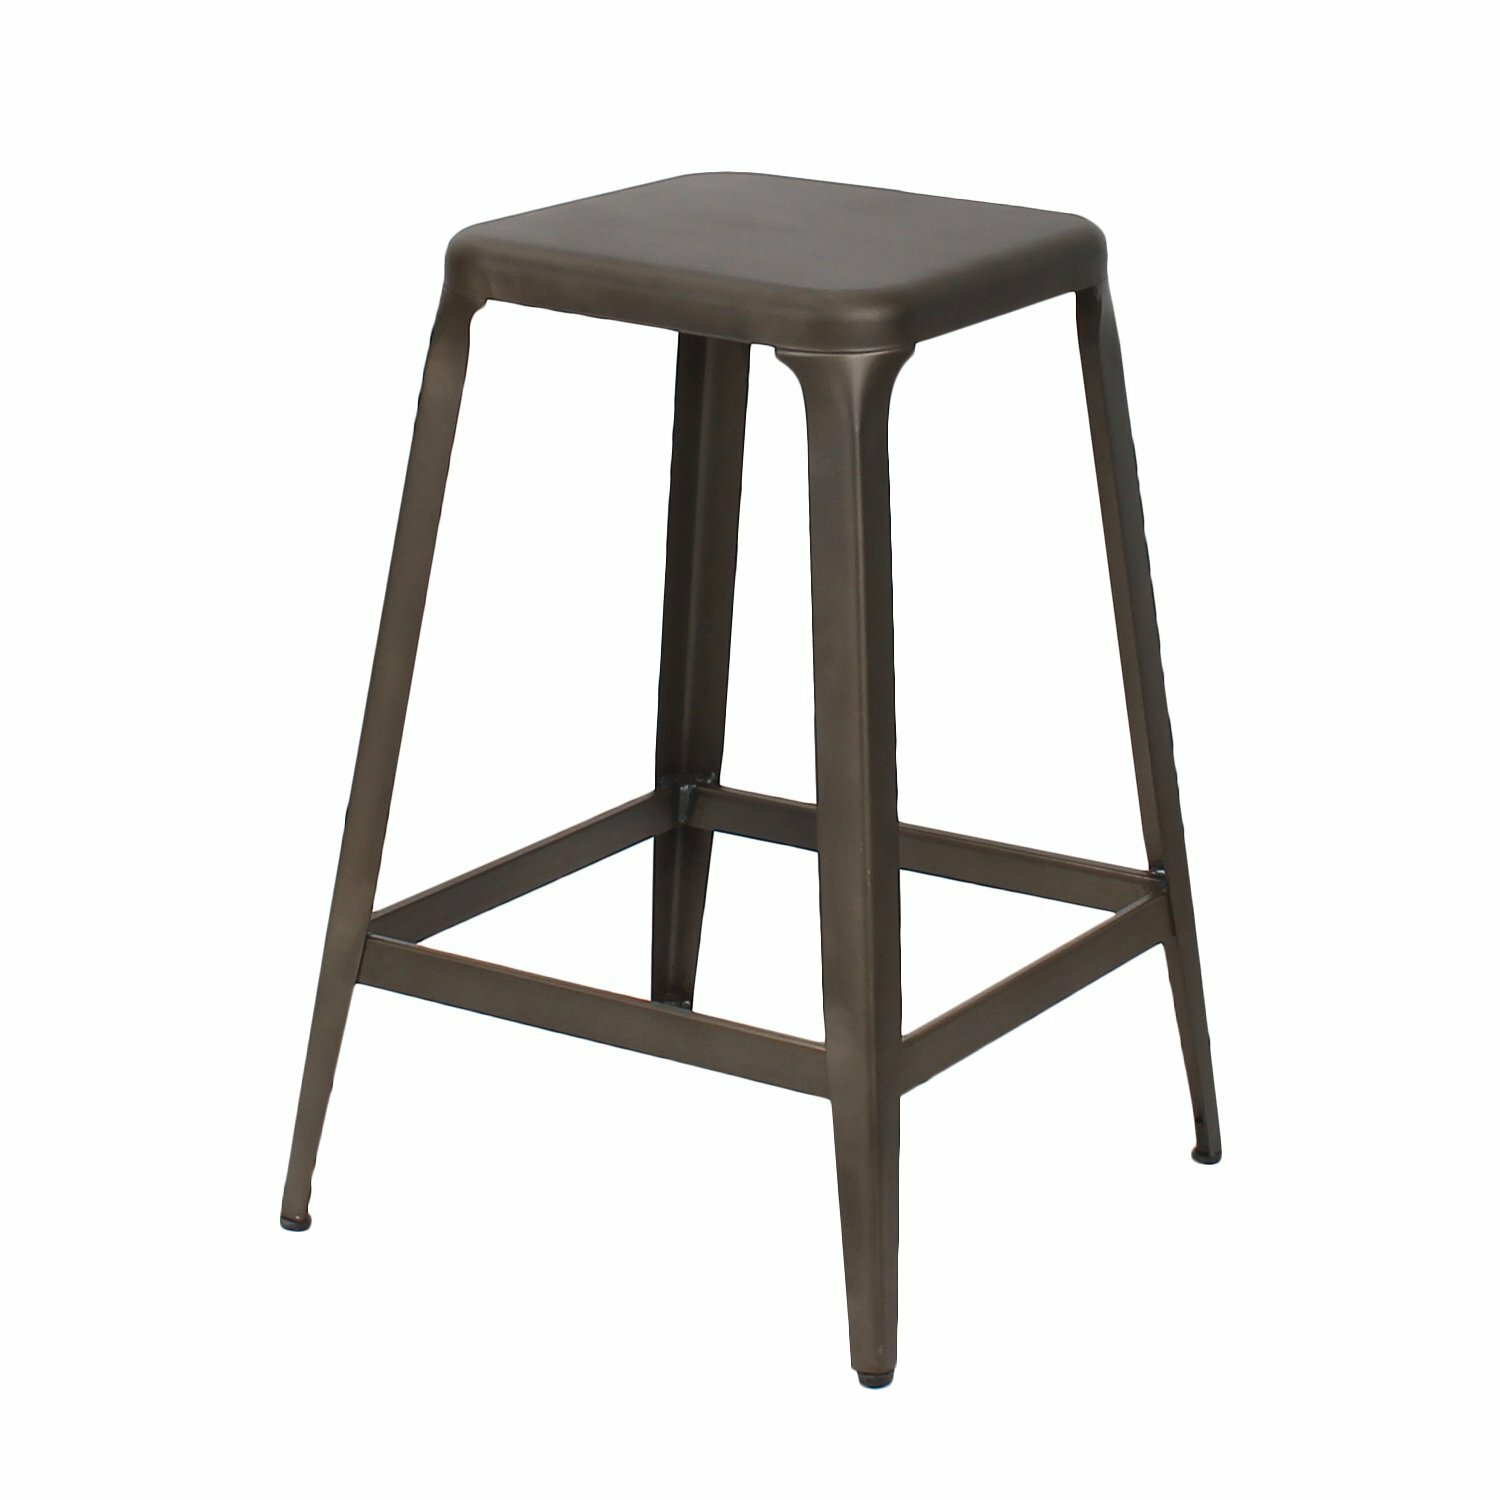 AdecoTrading 24quot Bar Stool amp Reviews Wayfair : 2422BarStool from www.wayfair.com size 1500 x 1500 jpeg 72kB